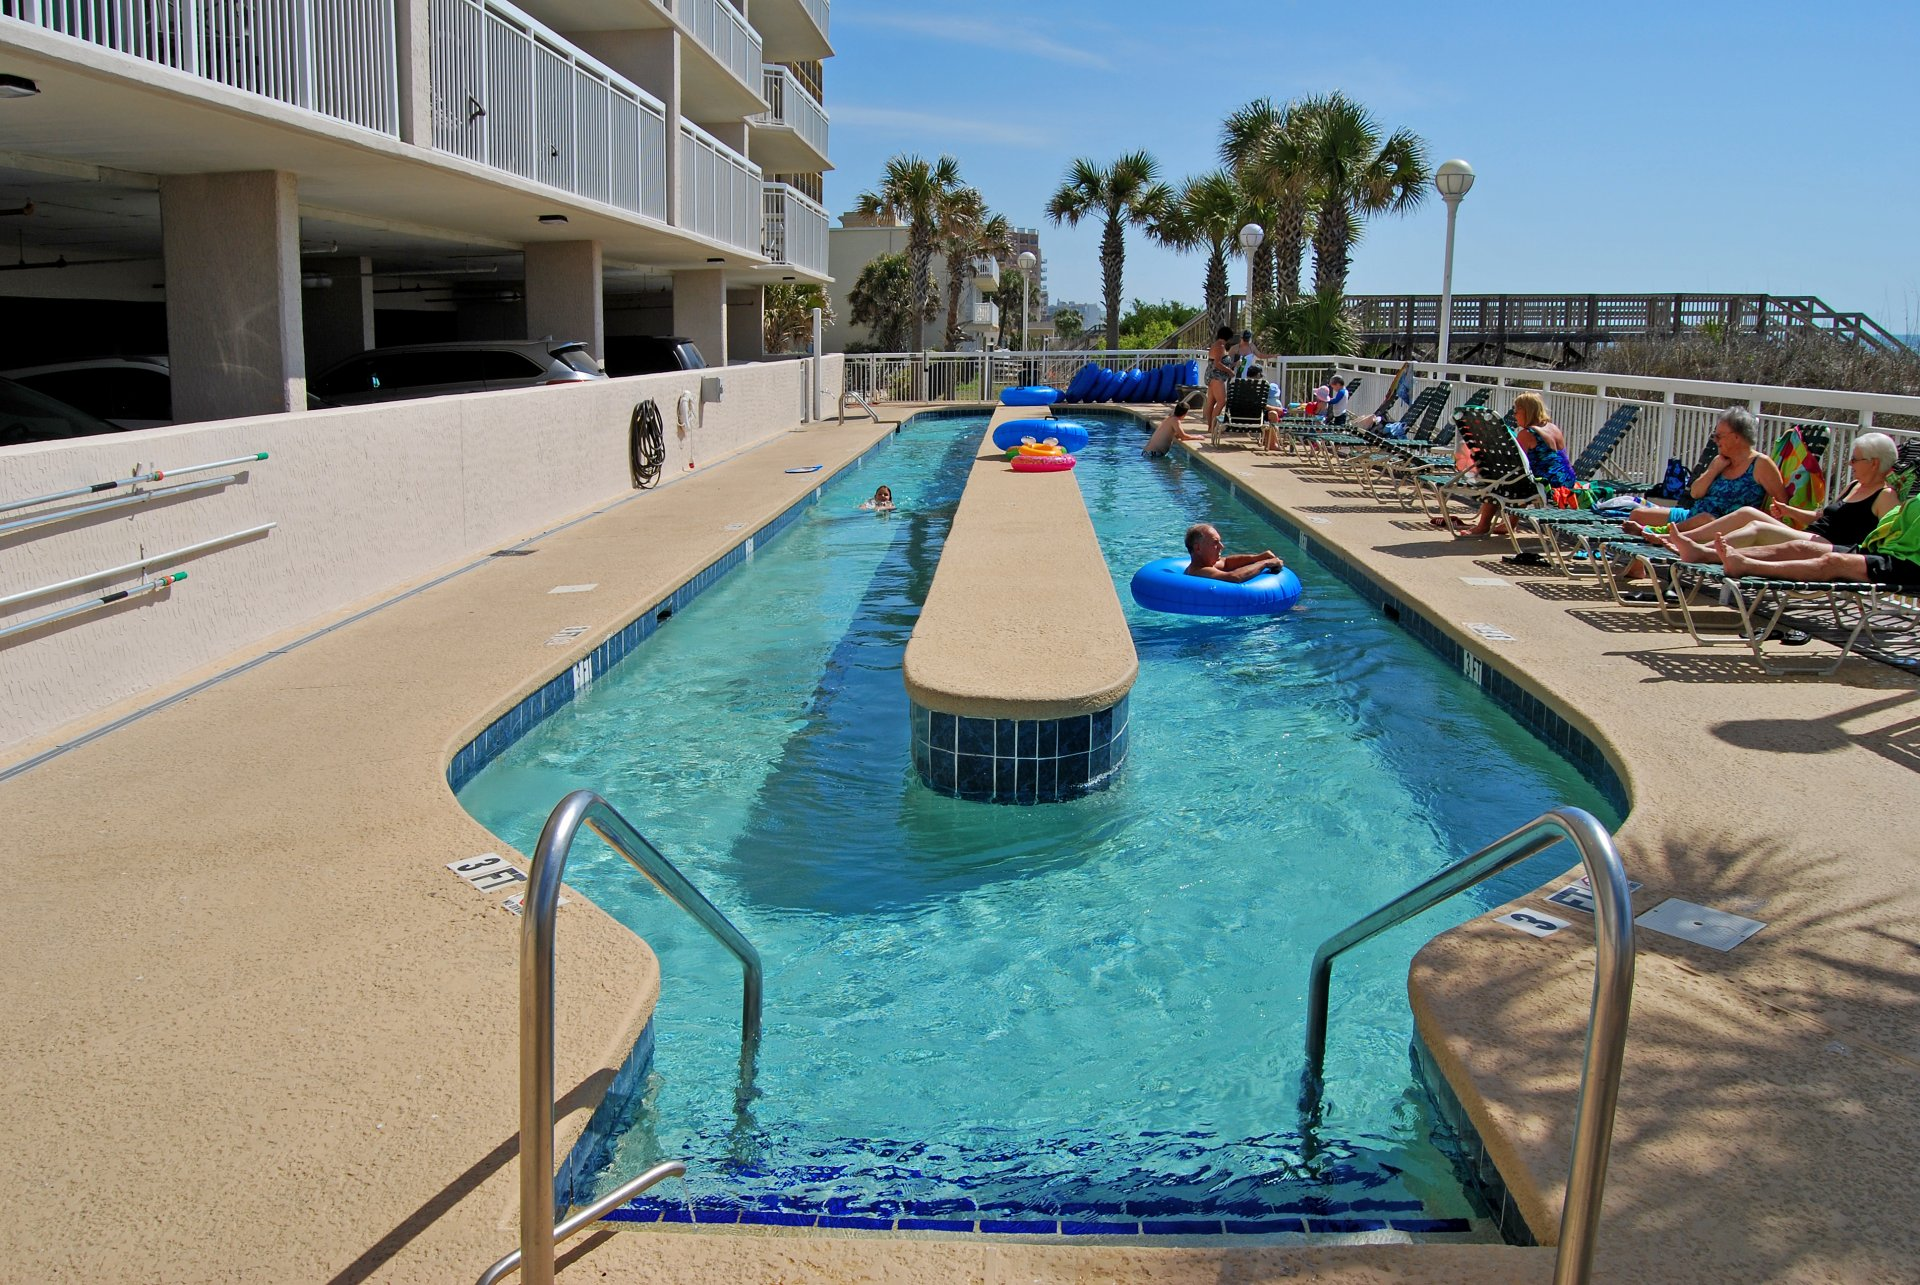 Garage Pizza Crescent Shores Condos For Rent | North Myrtle Beach